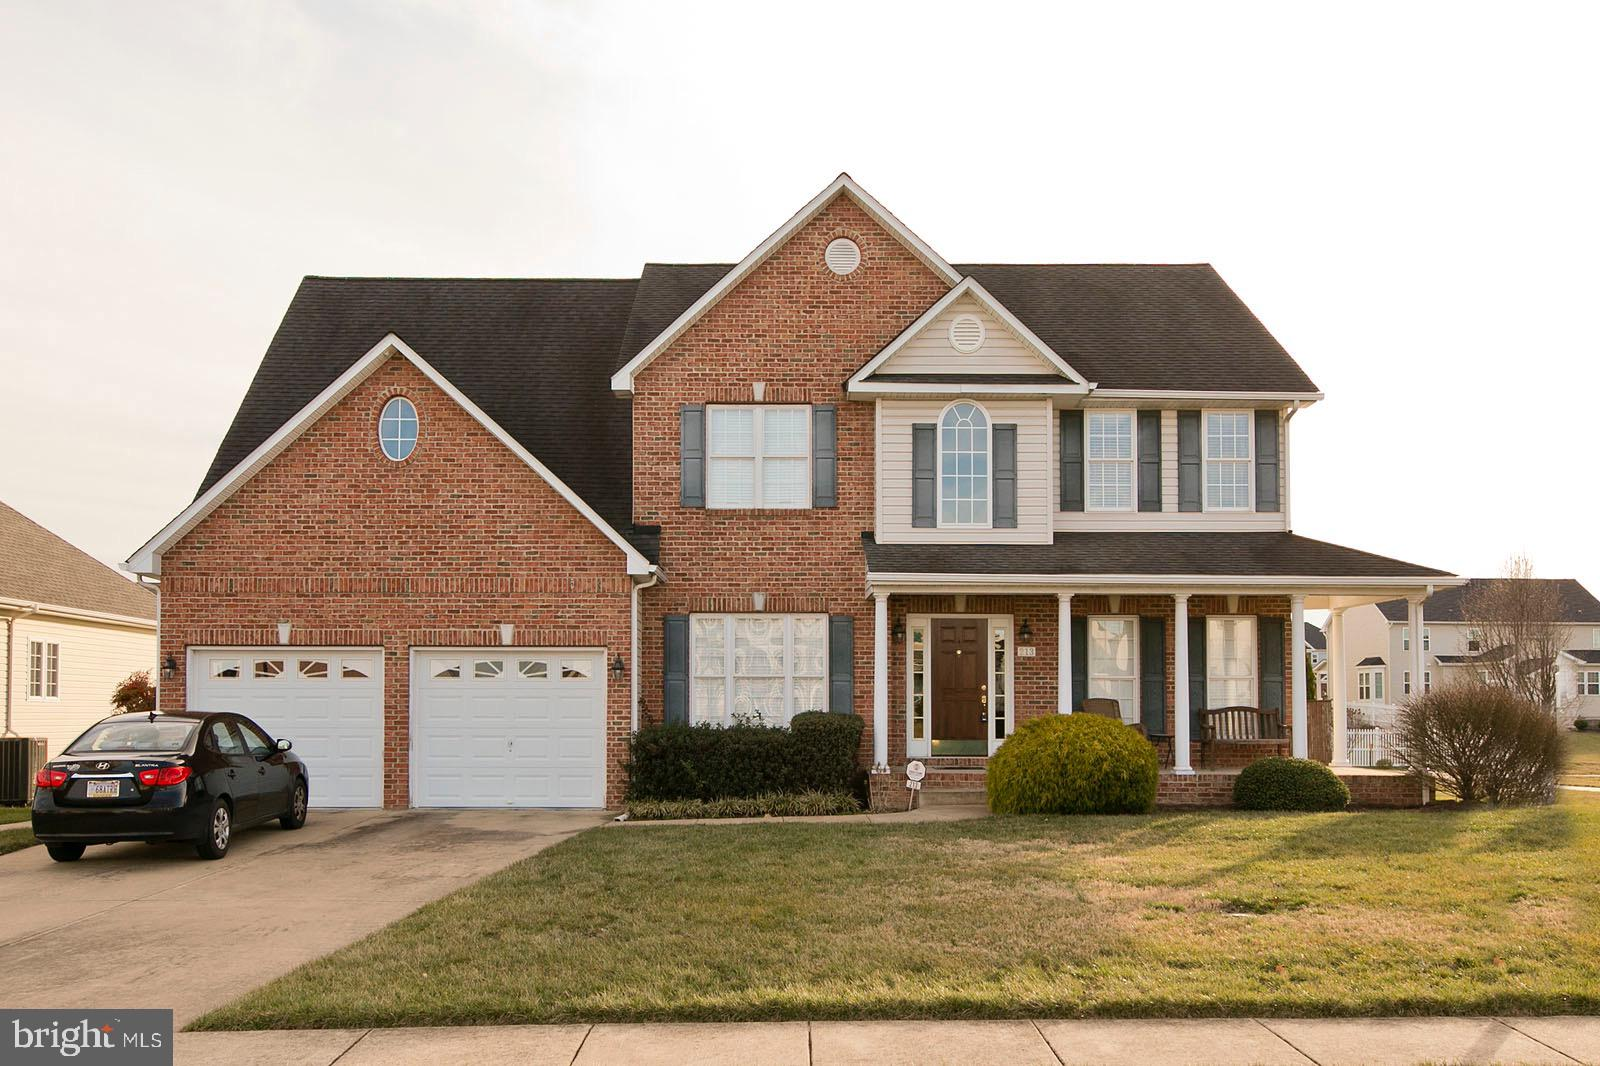 This grand 5 bedroom, 3 bath home could soon be yours! Upon entry, you will instantly notice the stu